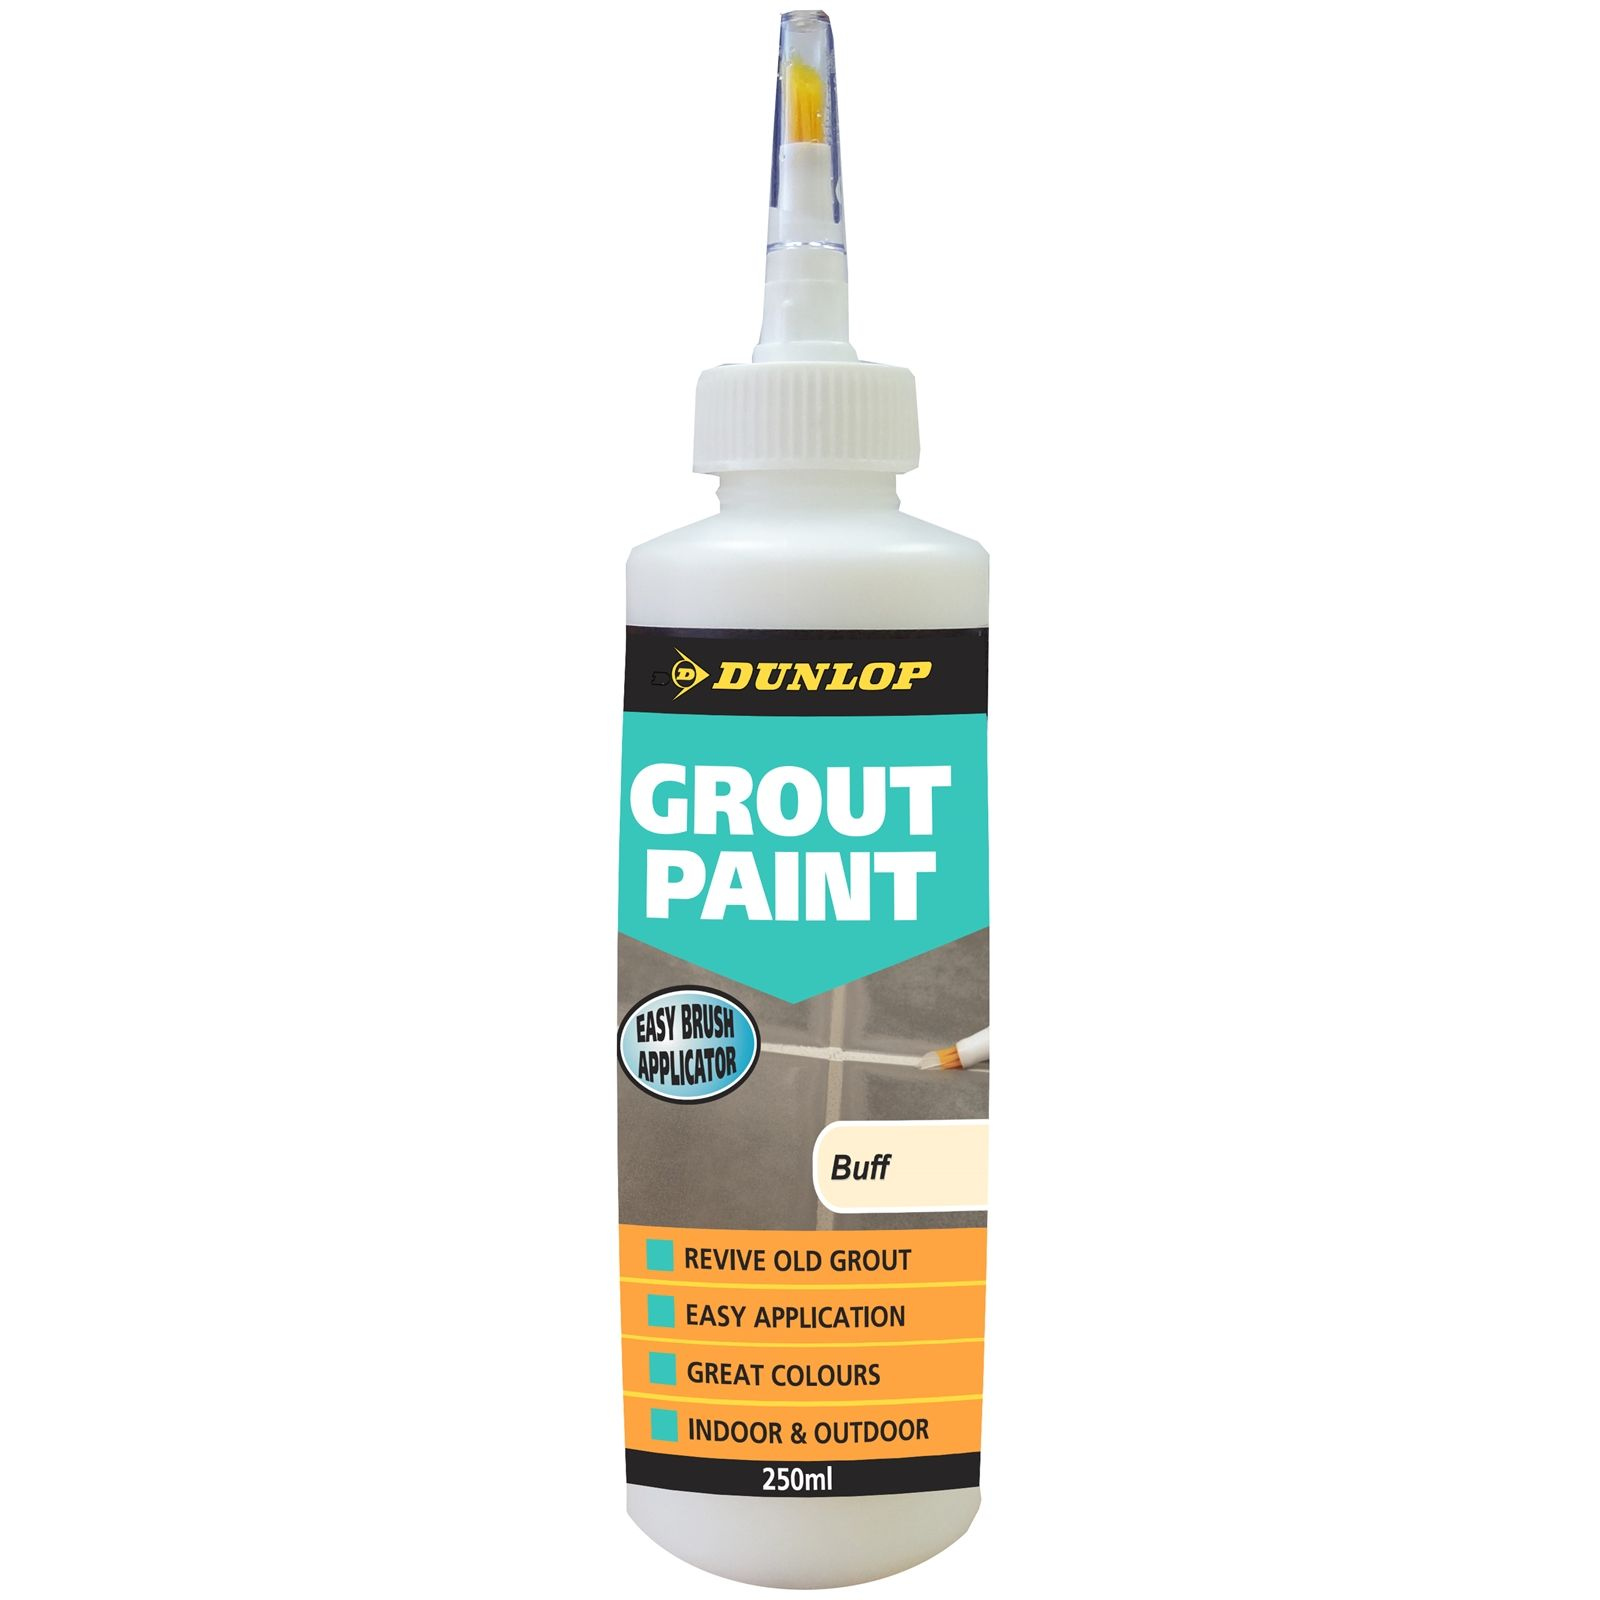 Find Dunlop 250ml Grout Paint Buff At Bunnings Warehouse Visit Your Local Store For The Widest Range Of Paint Decorating Pr Grout Paint Grout Black Grout